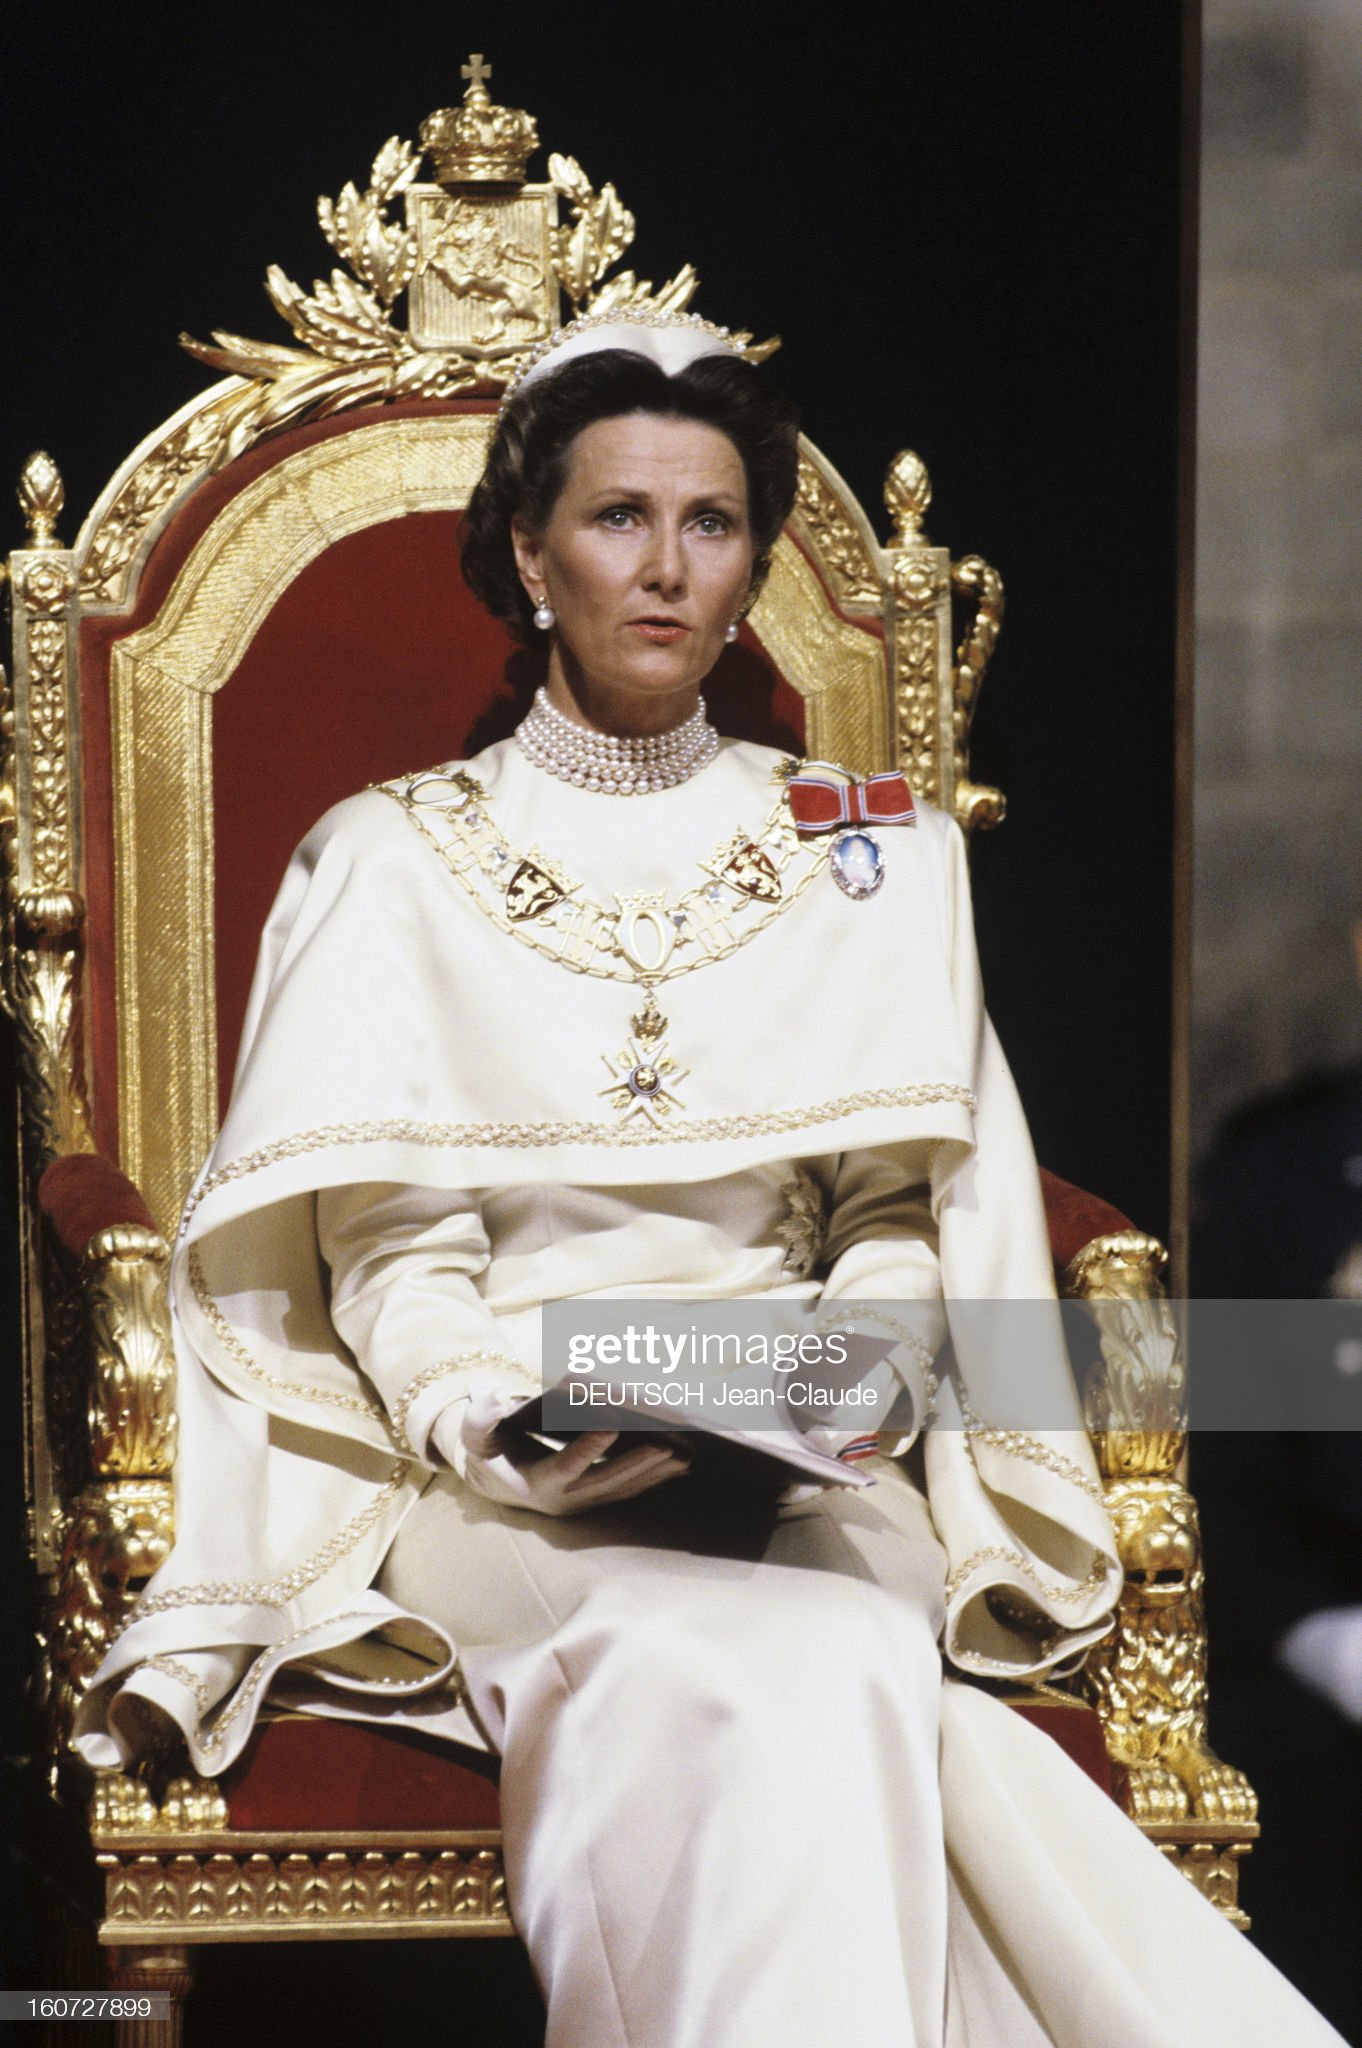 The Coronation Of King Harald V And Queen Sonja Of Norway : News Photo